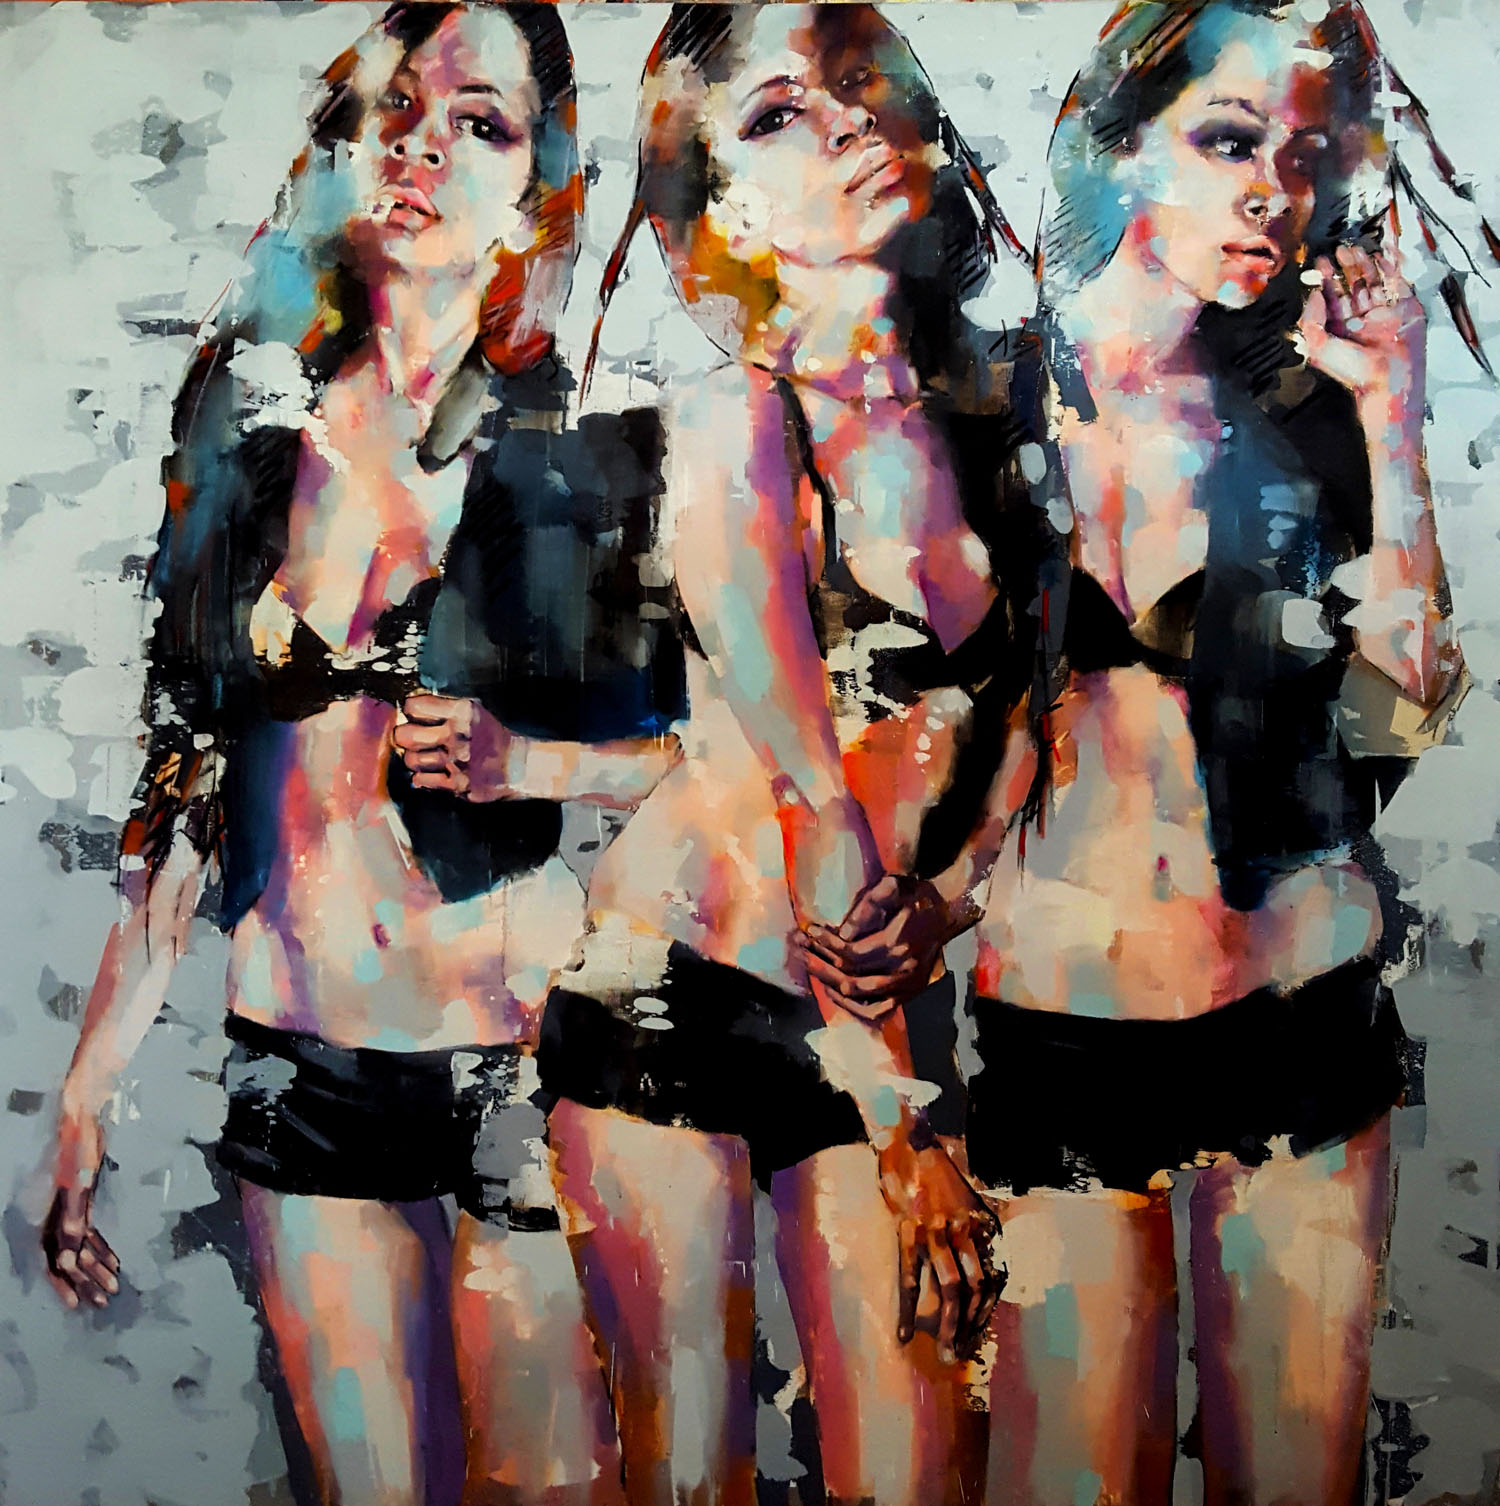 2-15-17 three figures (Sara) oil on canvas, 150x150cm